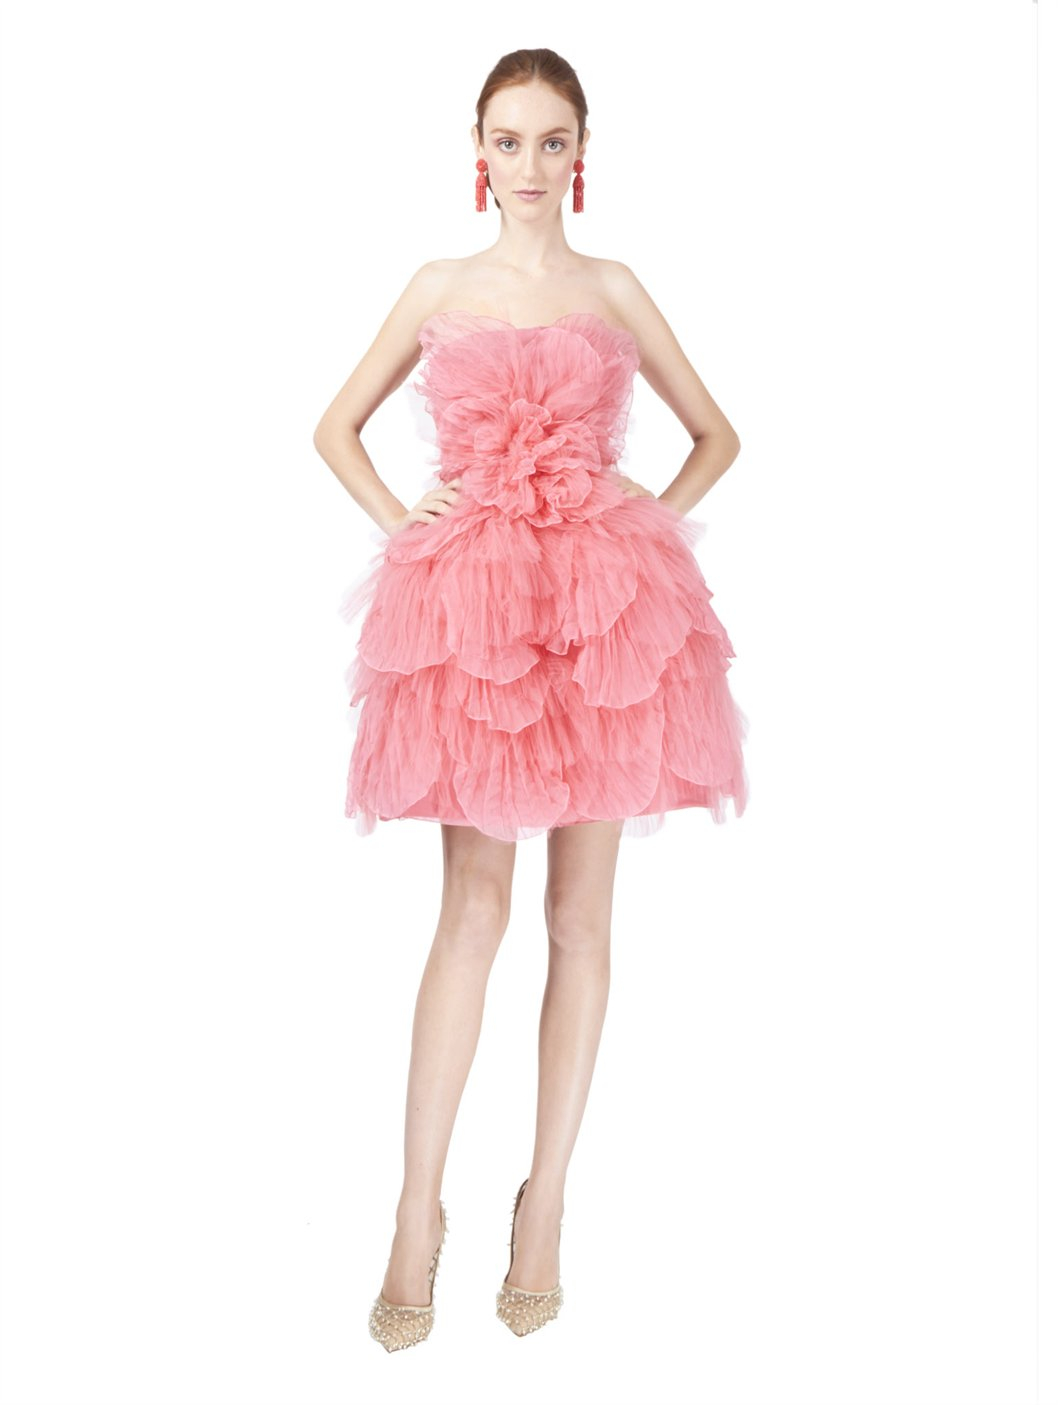 lyst oscar de la renta strapless tulle petal dress in pink. Black Bedroom Furniture Sets. Home Design Ideas